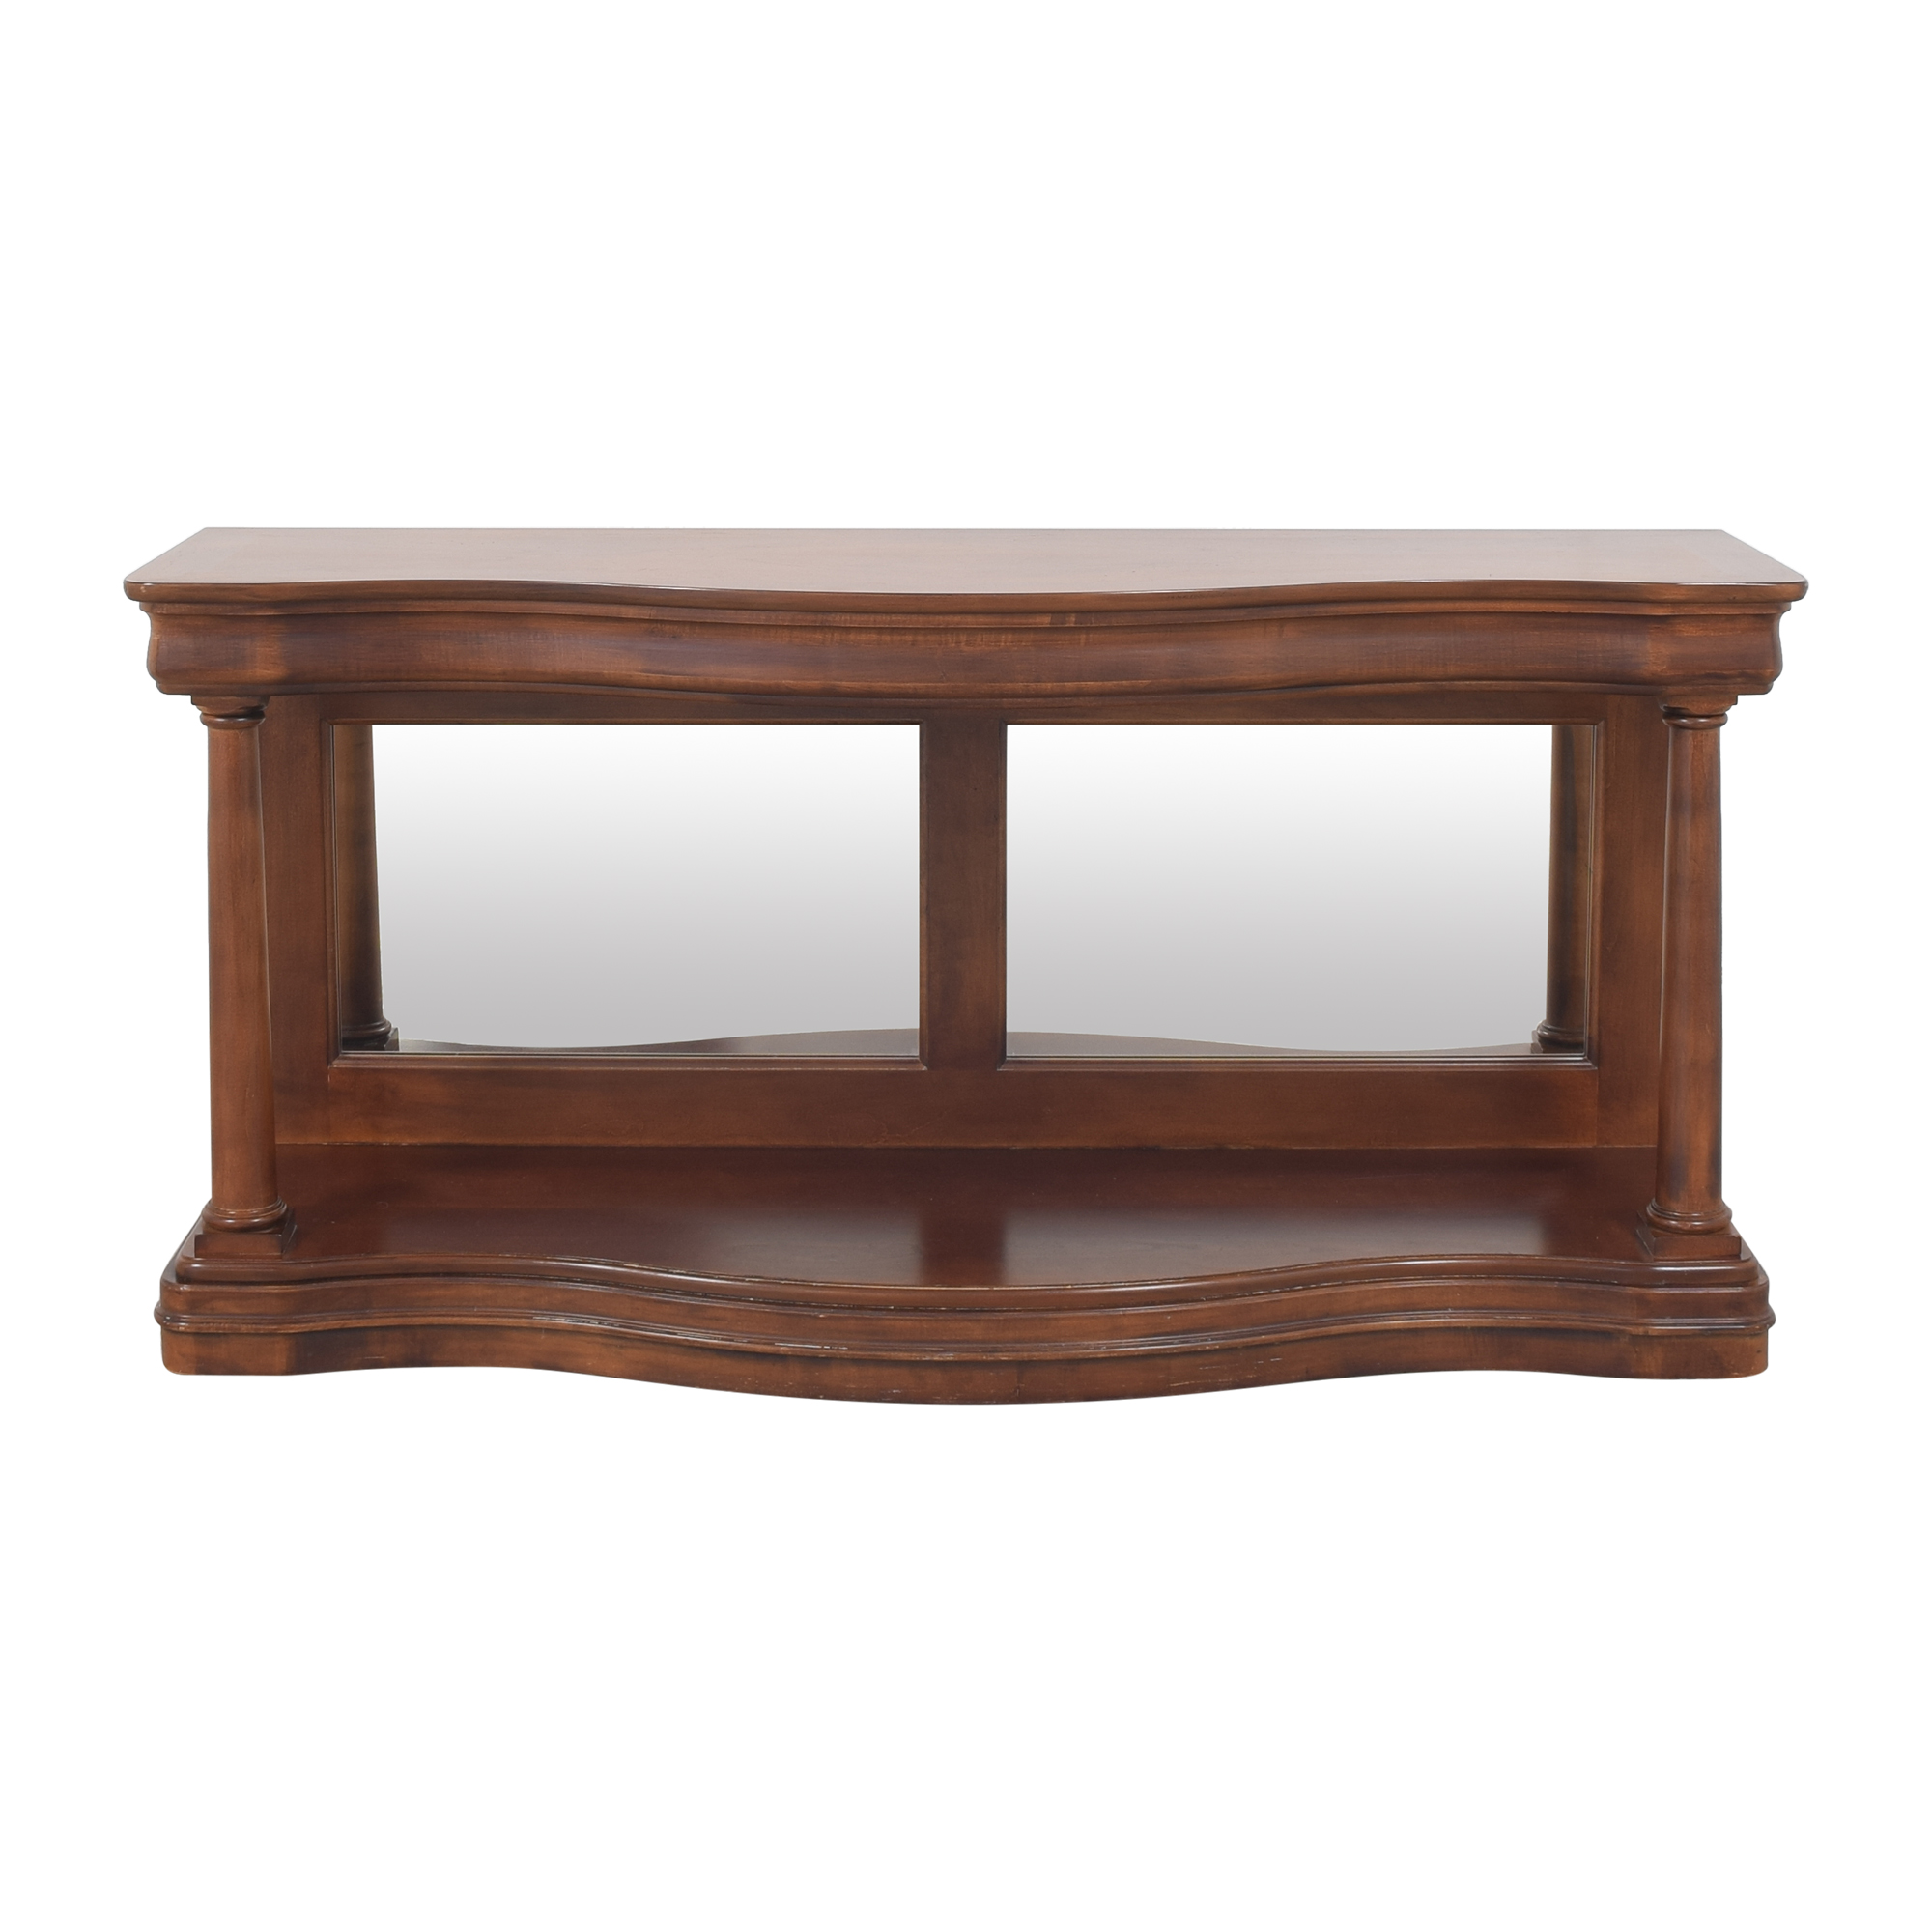 buy Drexel Heritage Mirrored Accent Table Drexel Heritage Tables